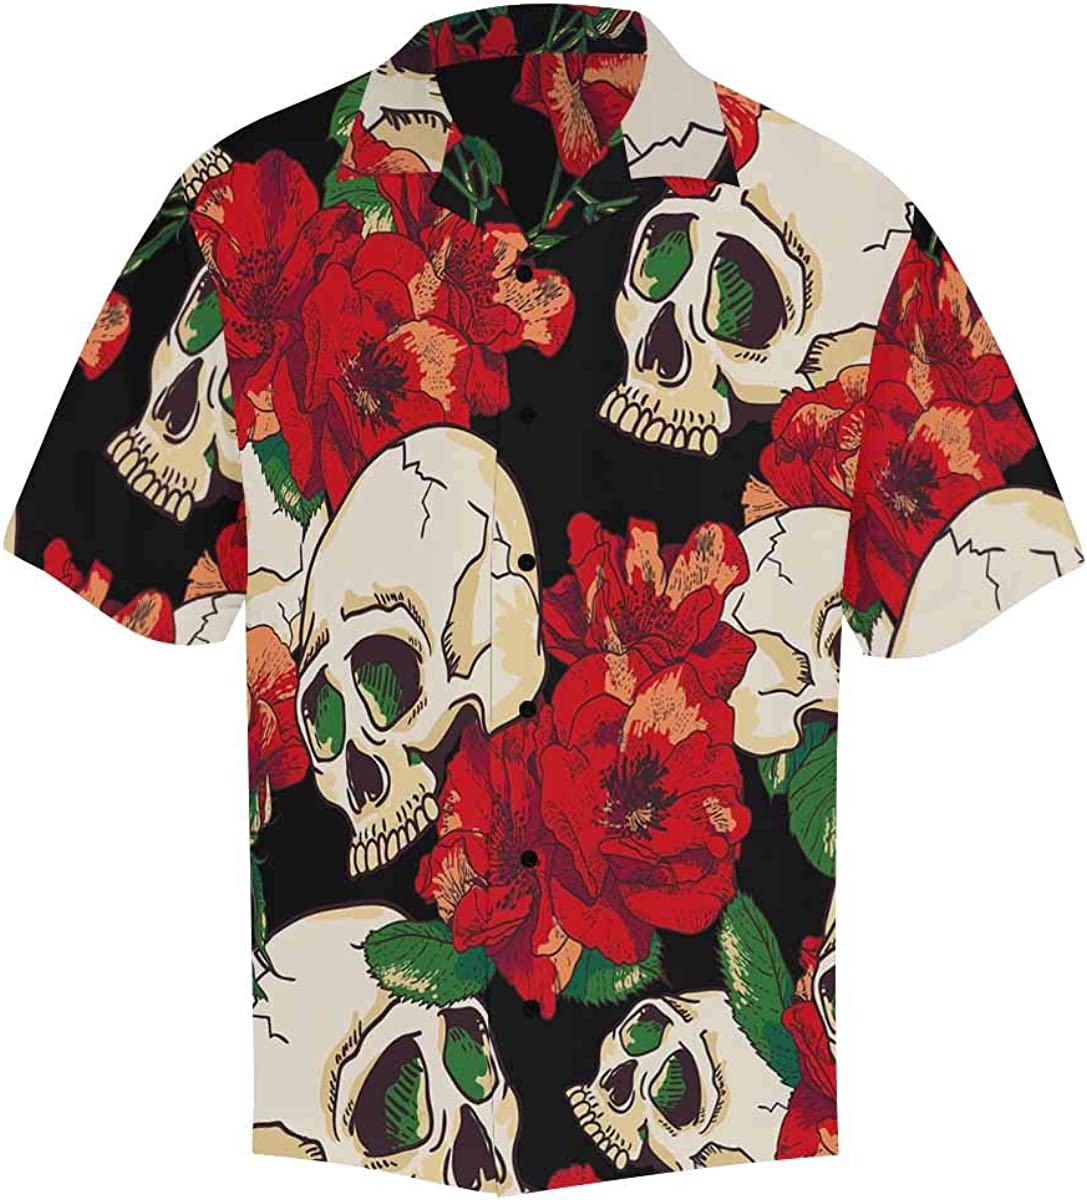 InterestPrint Men's Casual Button Down Limited Special Price Japan Maker New Sleeve Floral Skull Short